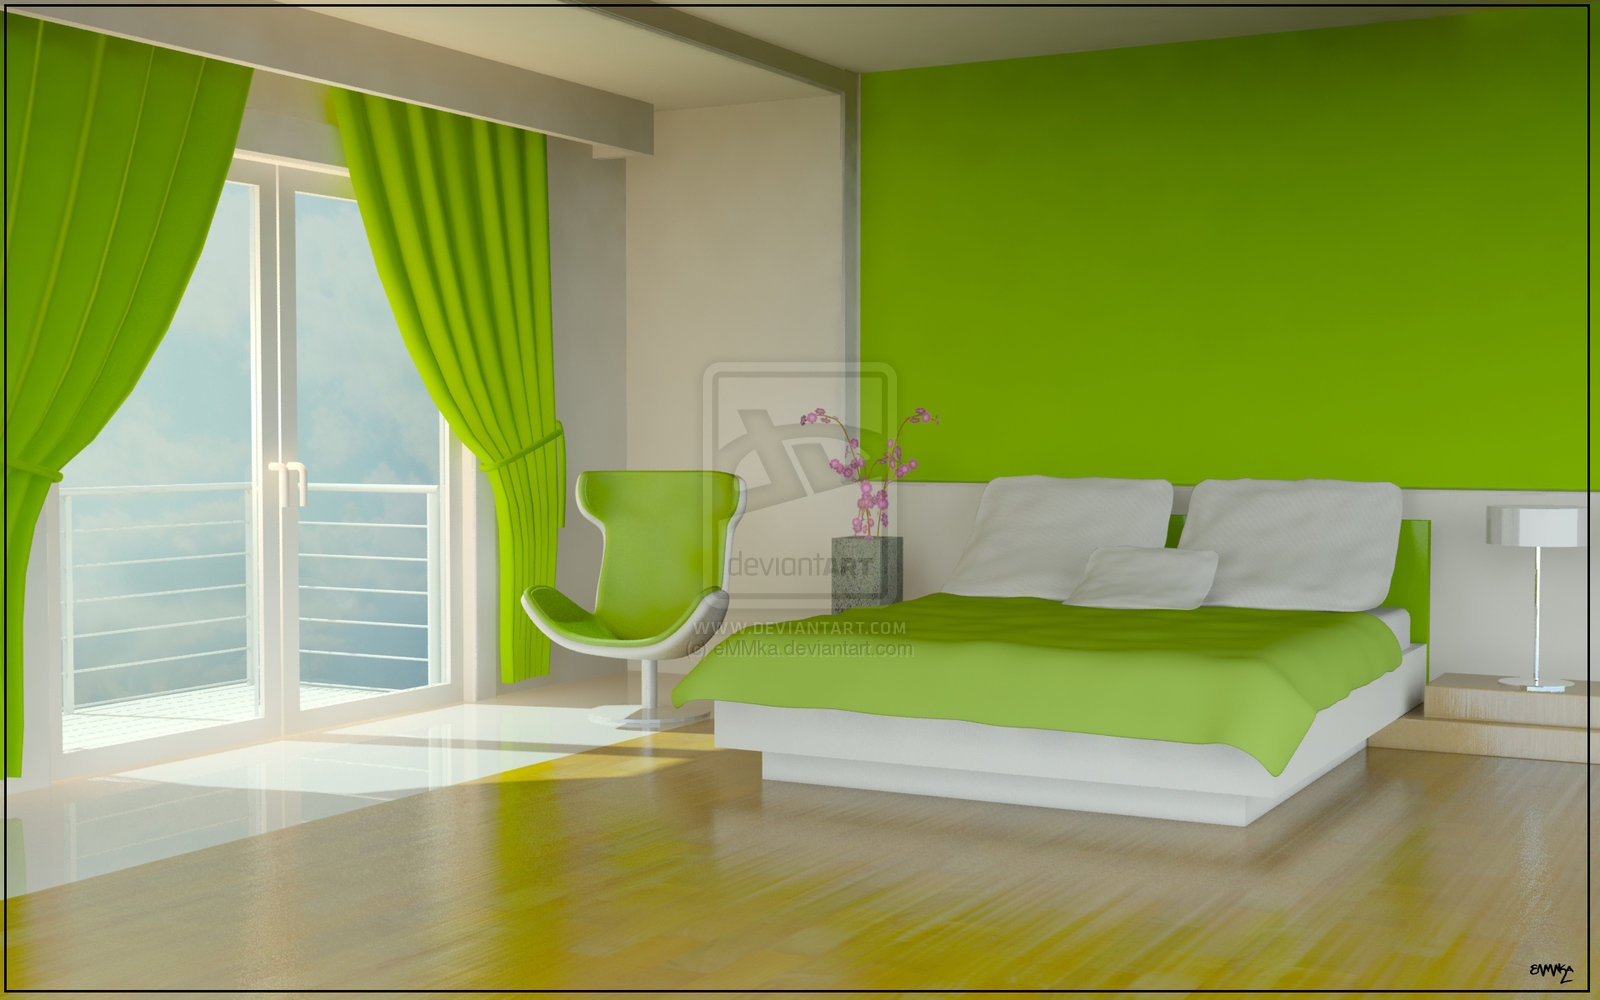 Magnificent Green Bedroom Design Ideas with Color 1600 x 1000 · 184 kB · jpeg